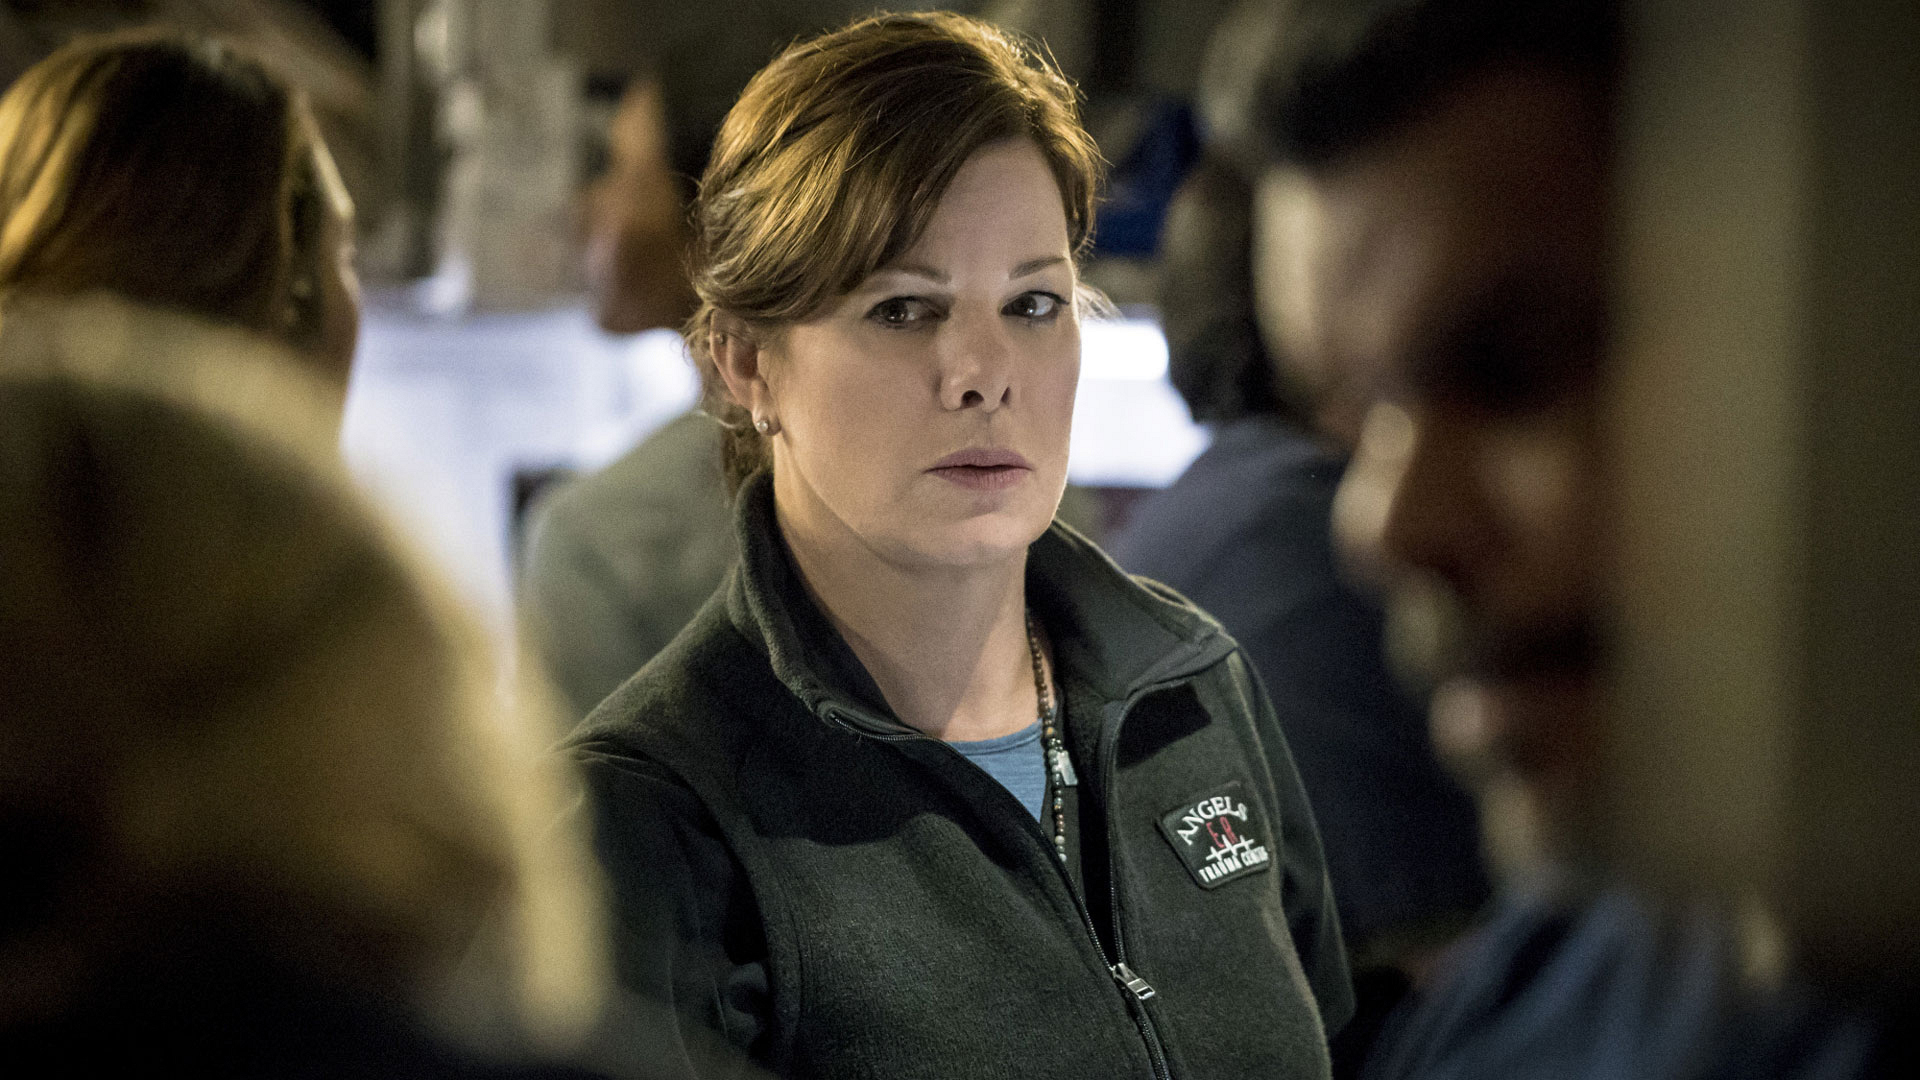 Code Black's medical staff will master new techniques and technologies in the field.